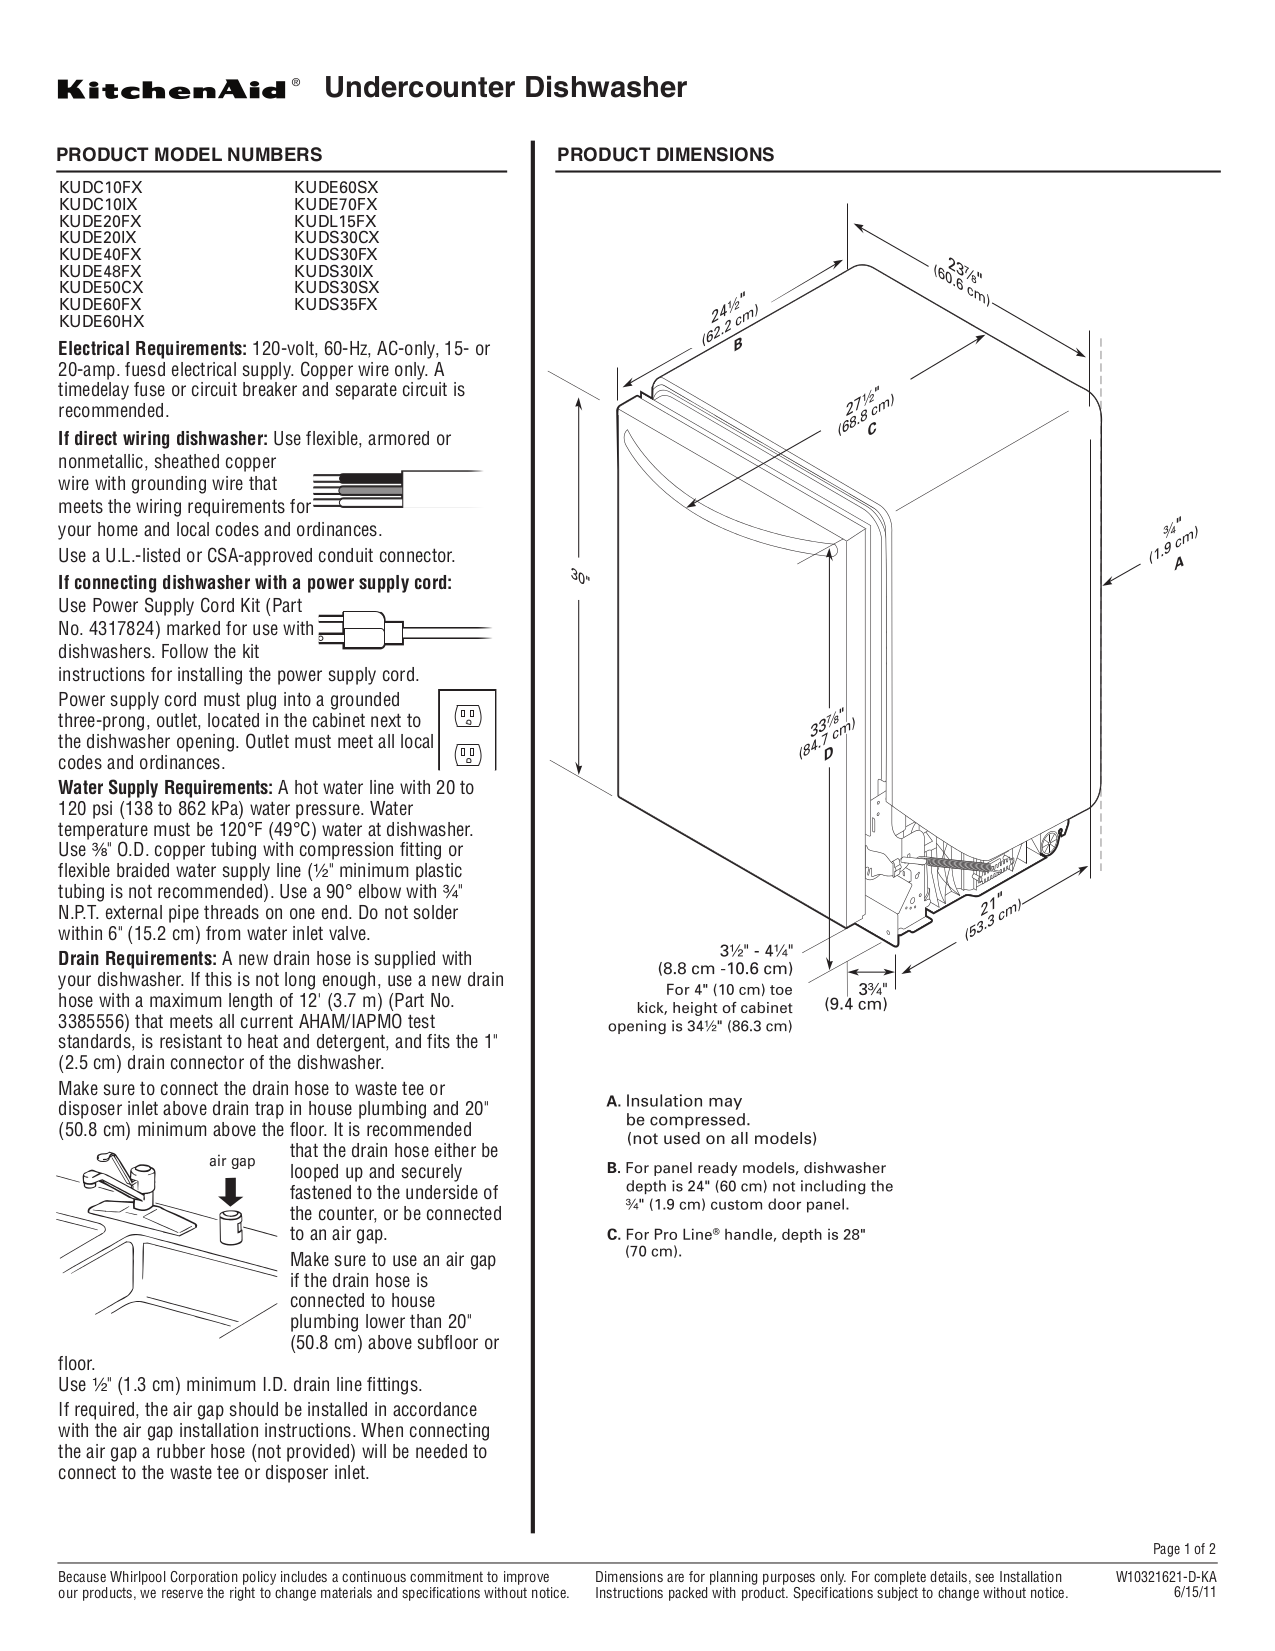 Kitchenaid dishwasher instruction manual kdte334gps000